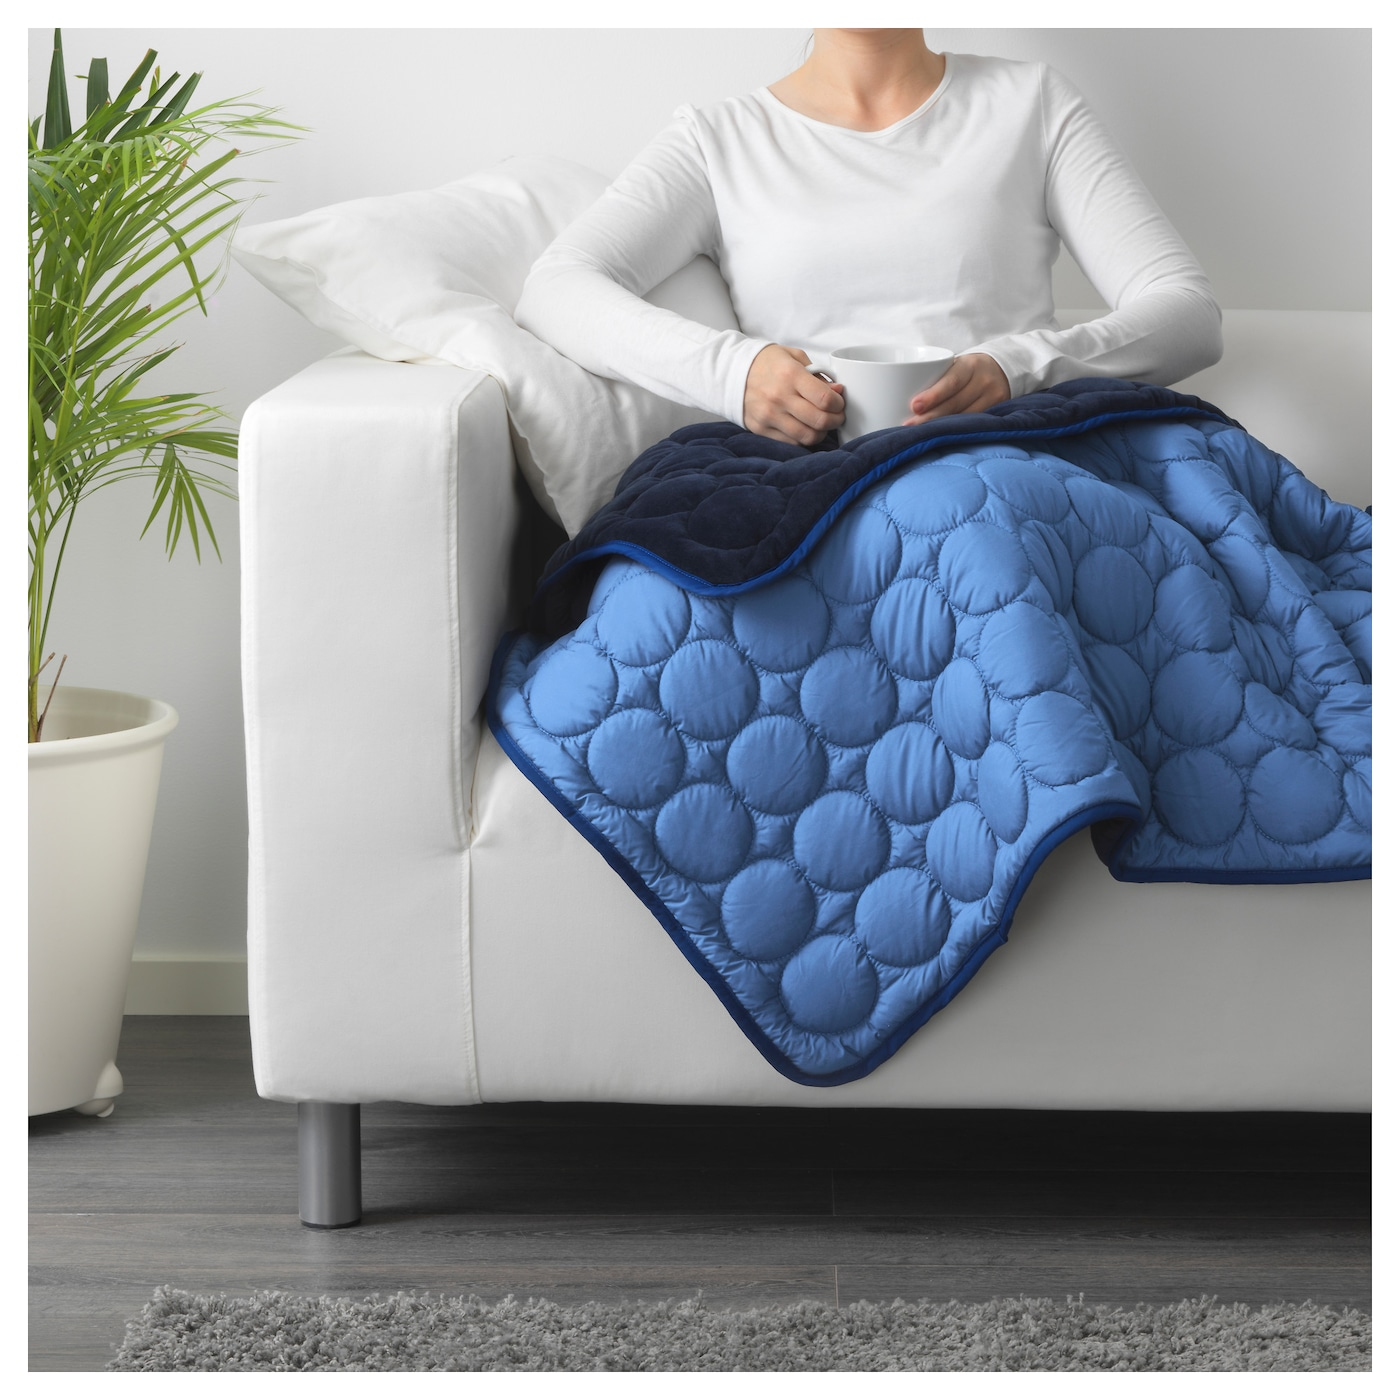 IKEA IKEA PS 2017 blanket Can be used as bedspread for a single bed or as a large blanket.